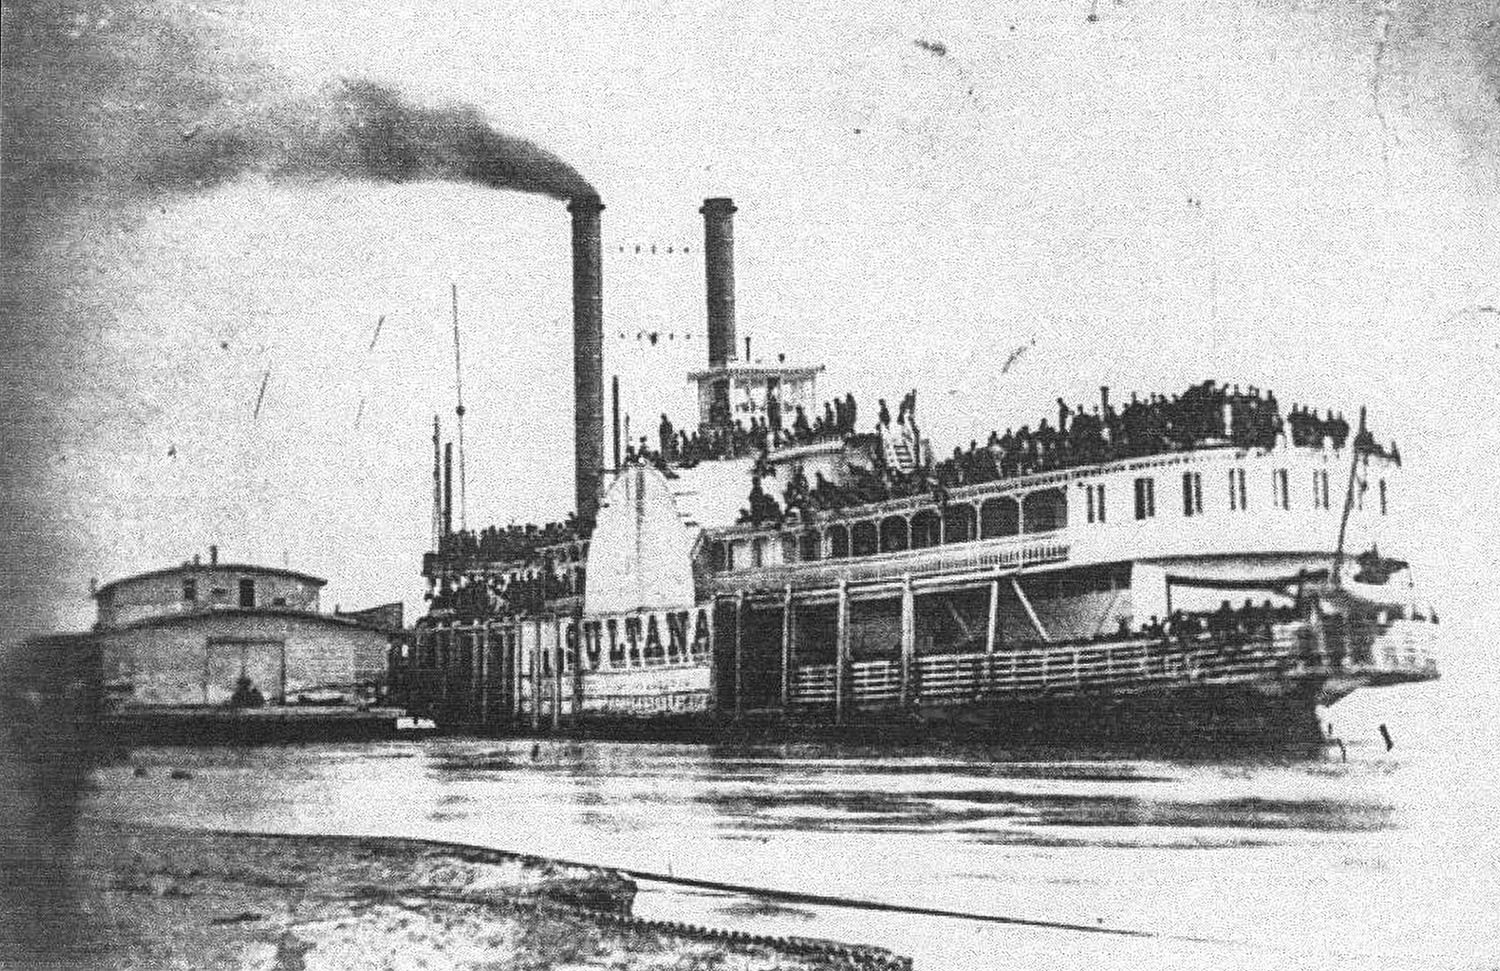 The Sultana at  the Helena, Ark., wharfboat. (Keith Norrington collection)